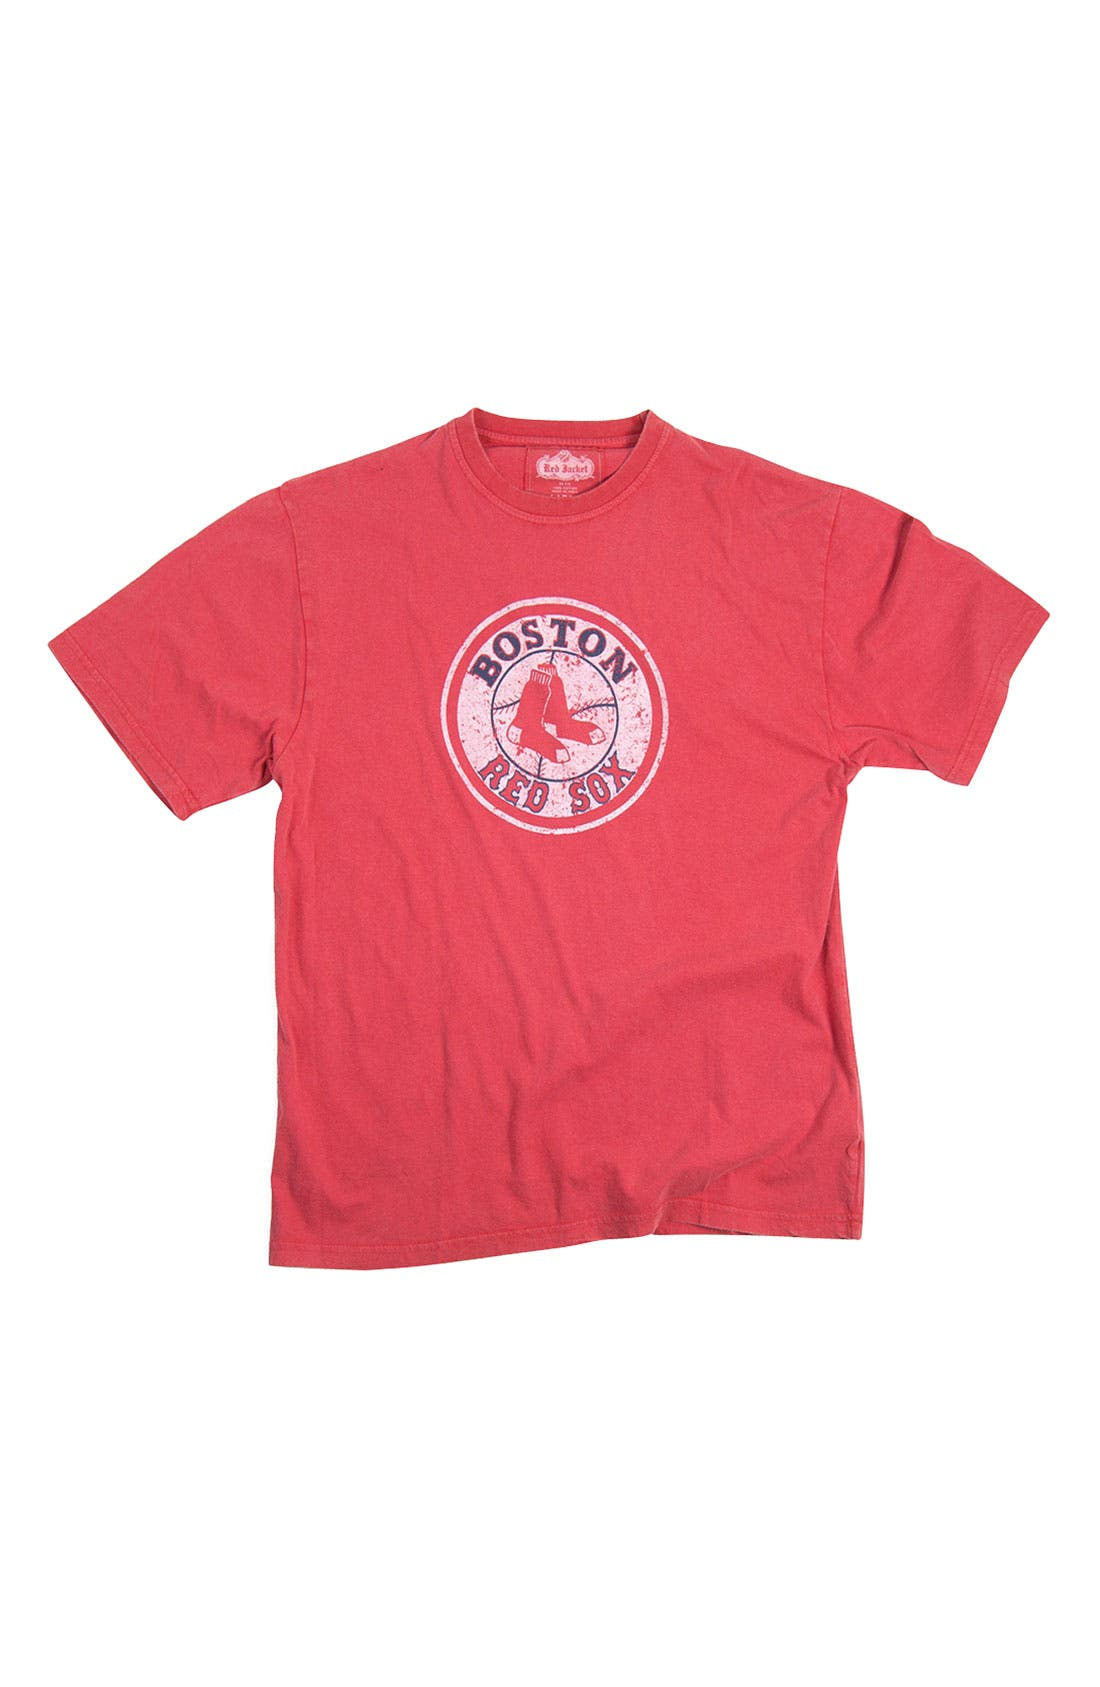 Alternate Image 1 Selected - Red Jacket 'Boston Red Sox' Trim Fit T-Shirt (Men)